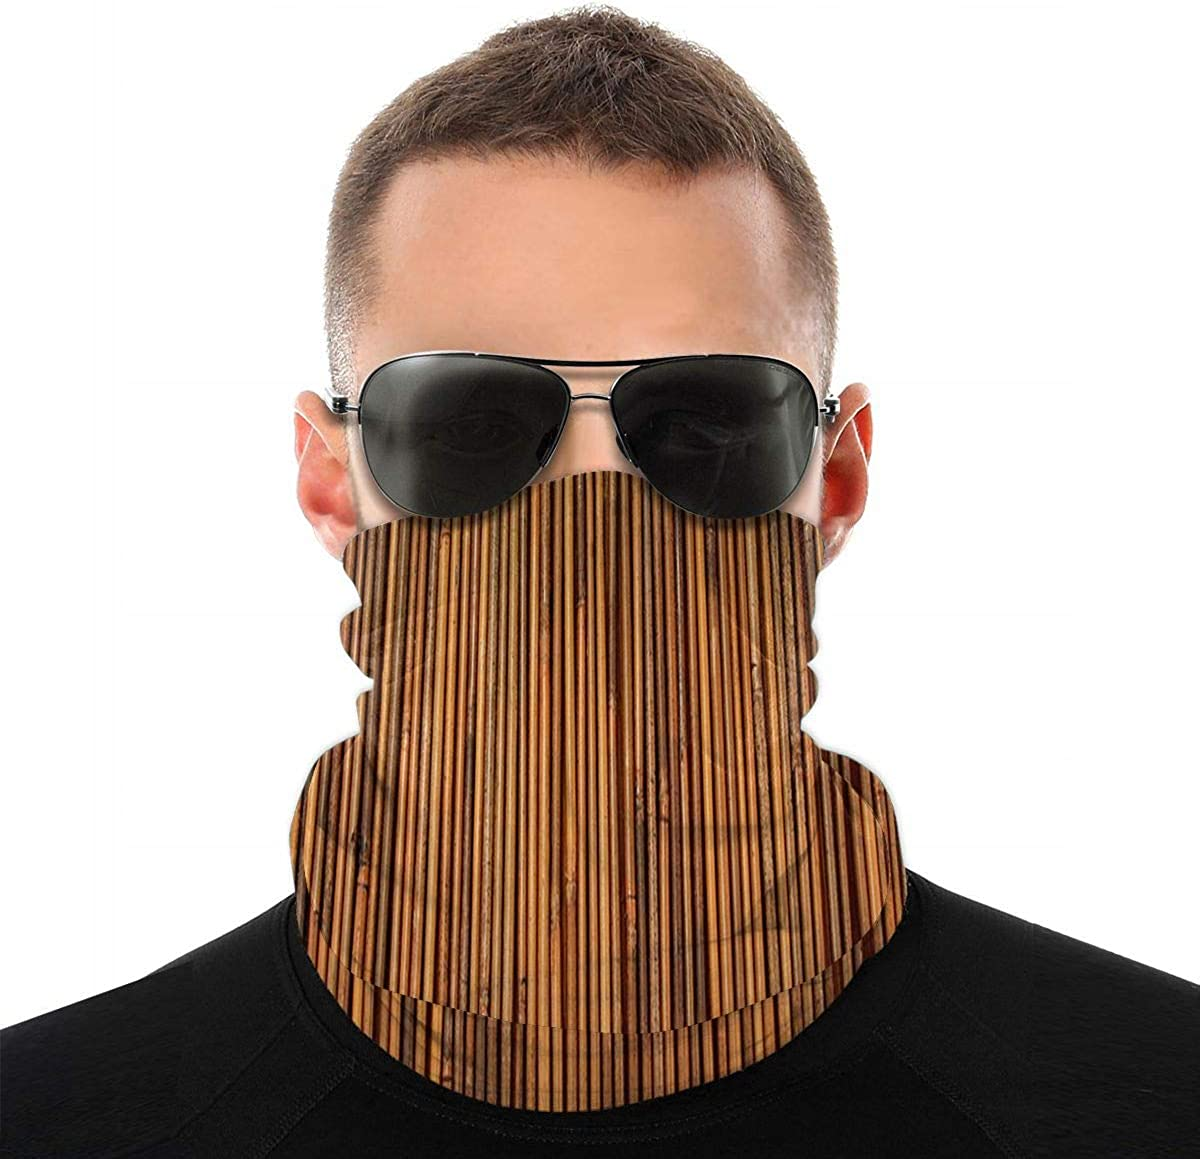 KiuLoam Vintage Bamboo Natural Texture Print Seamless Face Mask Bandanas Neck Gaiter for Men and Women, Multifunction Headband Scarf for Dust, Outdoors, Sports